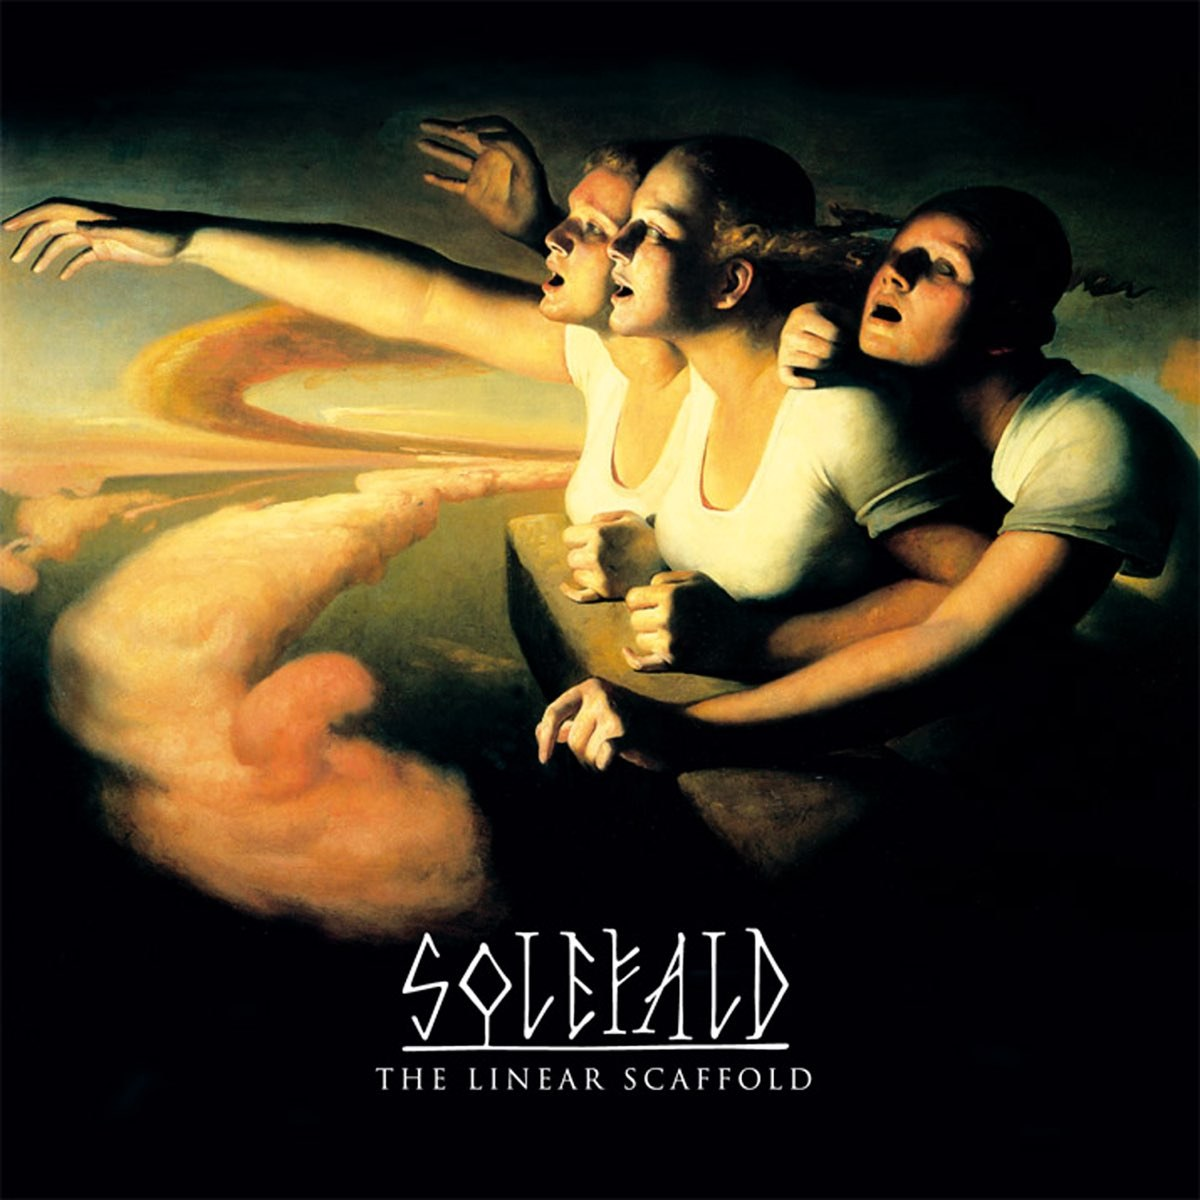 Review for Solefald - The Linear Scaffold